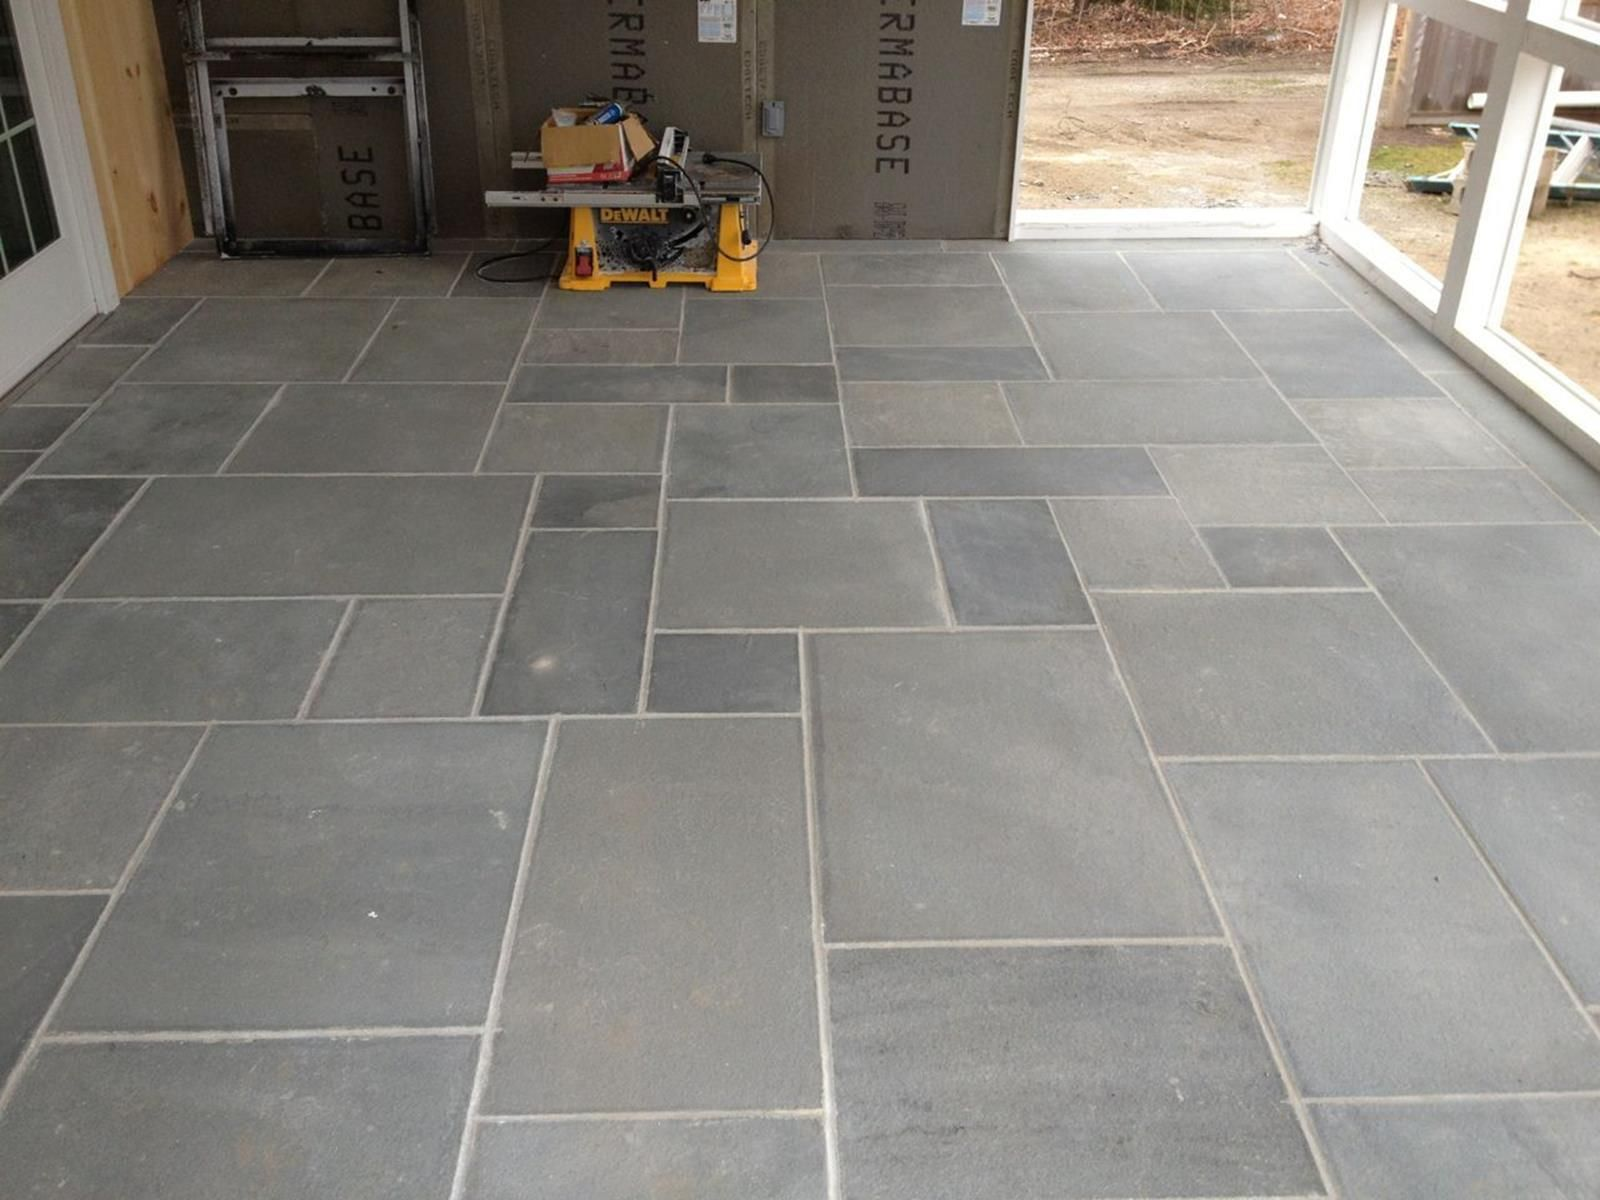 Outdoor Stone Tile Flooring Ideas 14 Porch Tile Patio Flooring Stone Tile Flooring